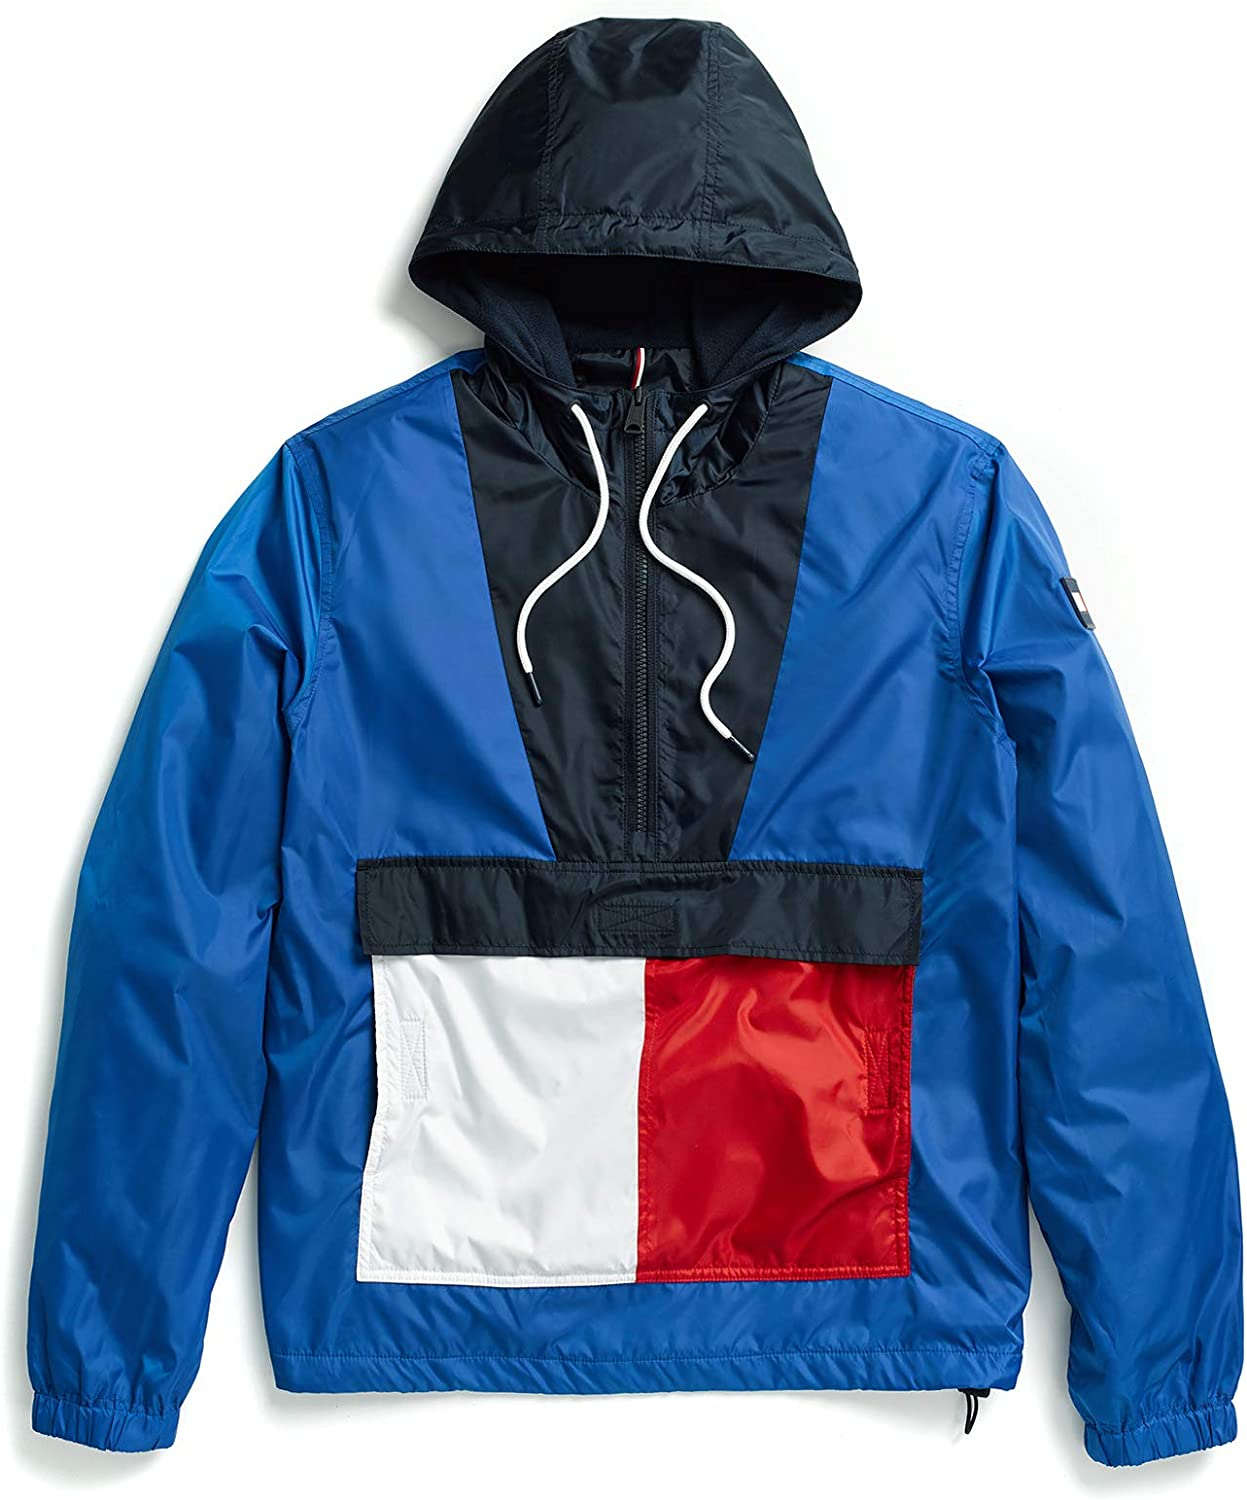 Tommy Hilfiger Men's Adaptive Jacket with Extended Zipper Pull